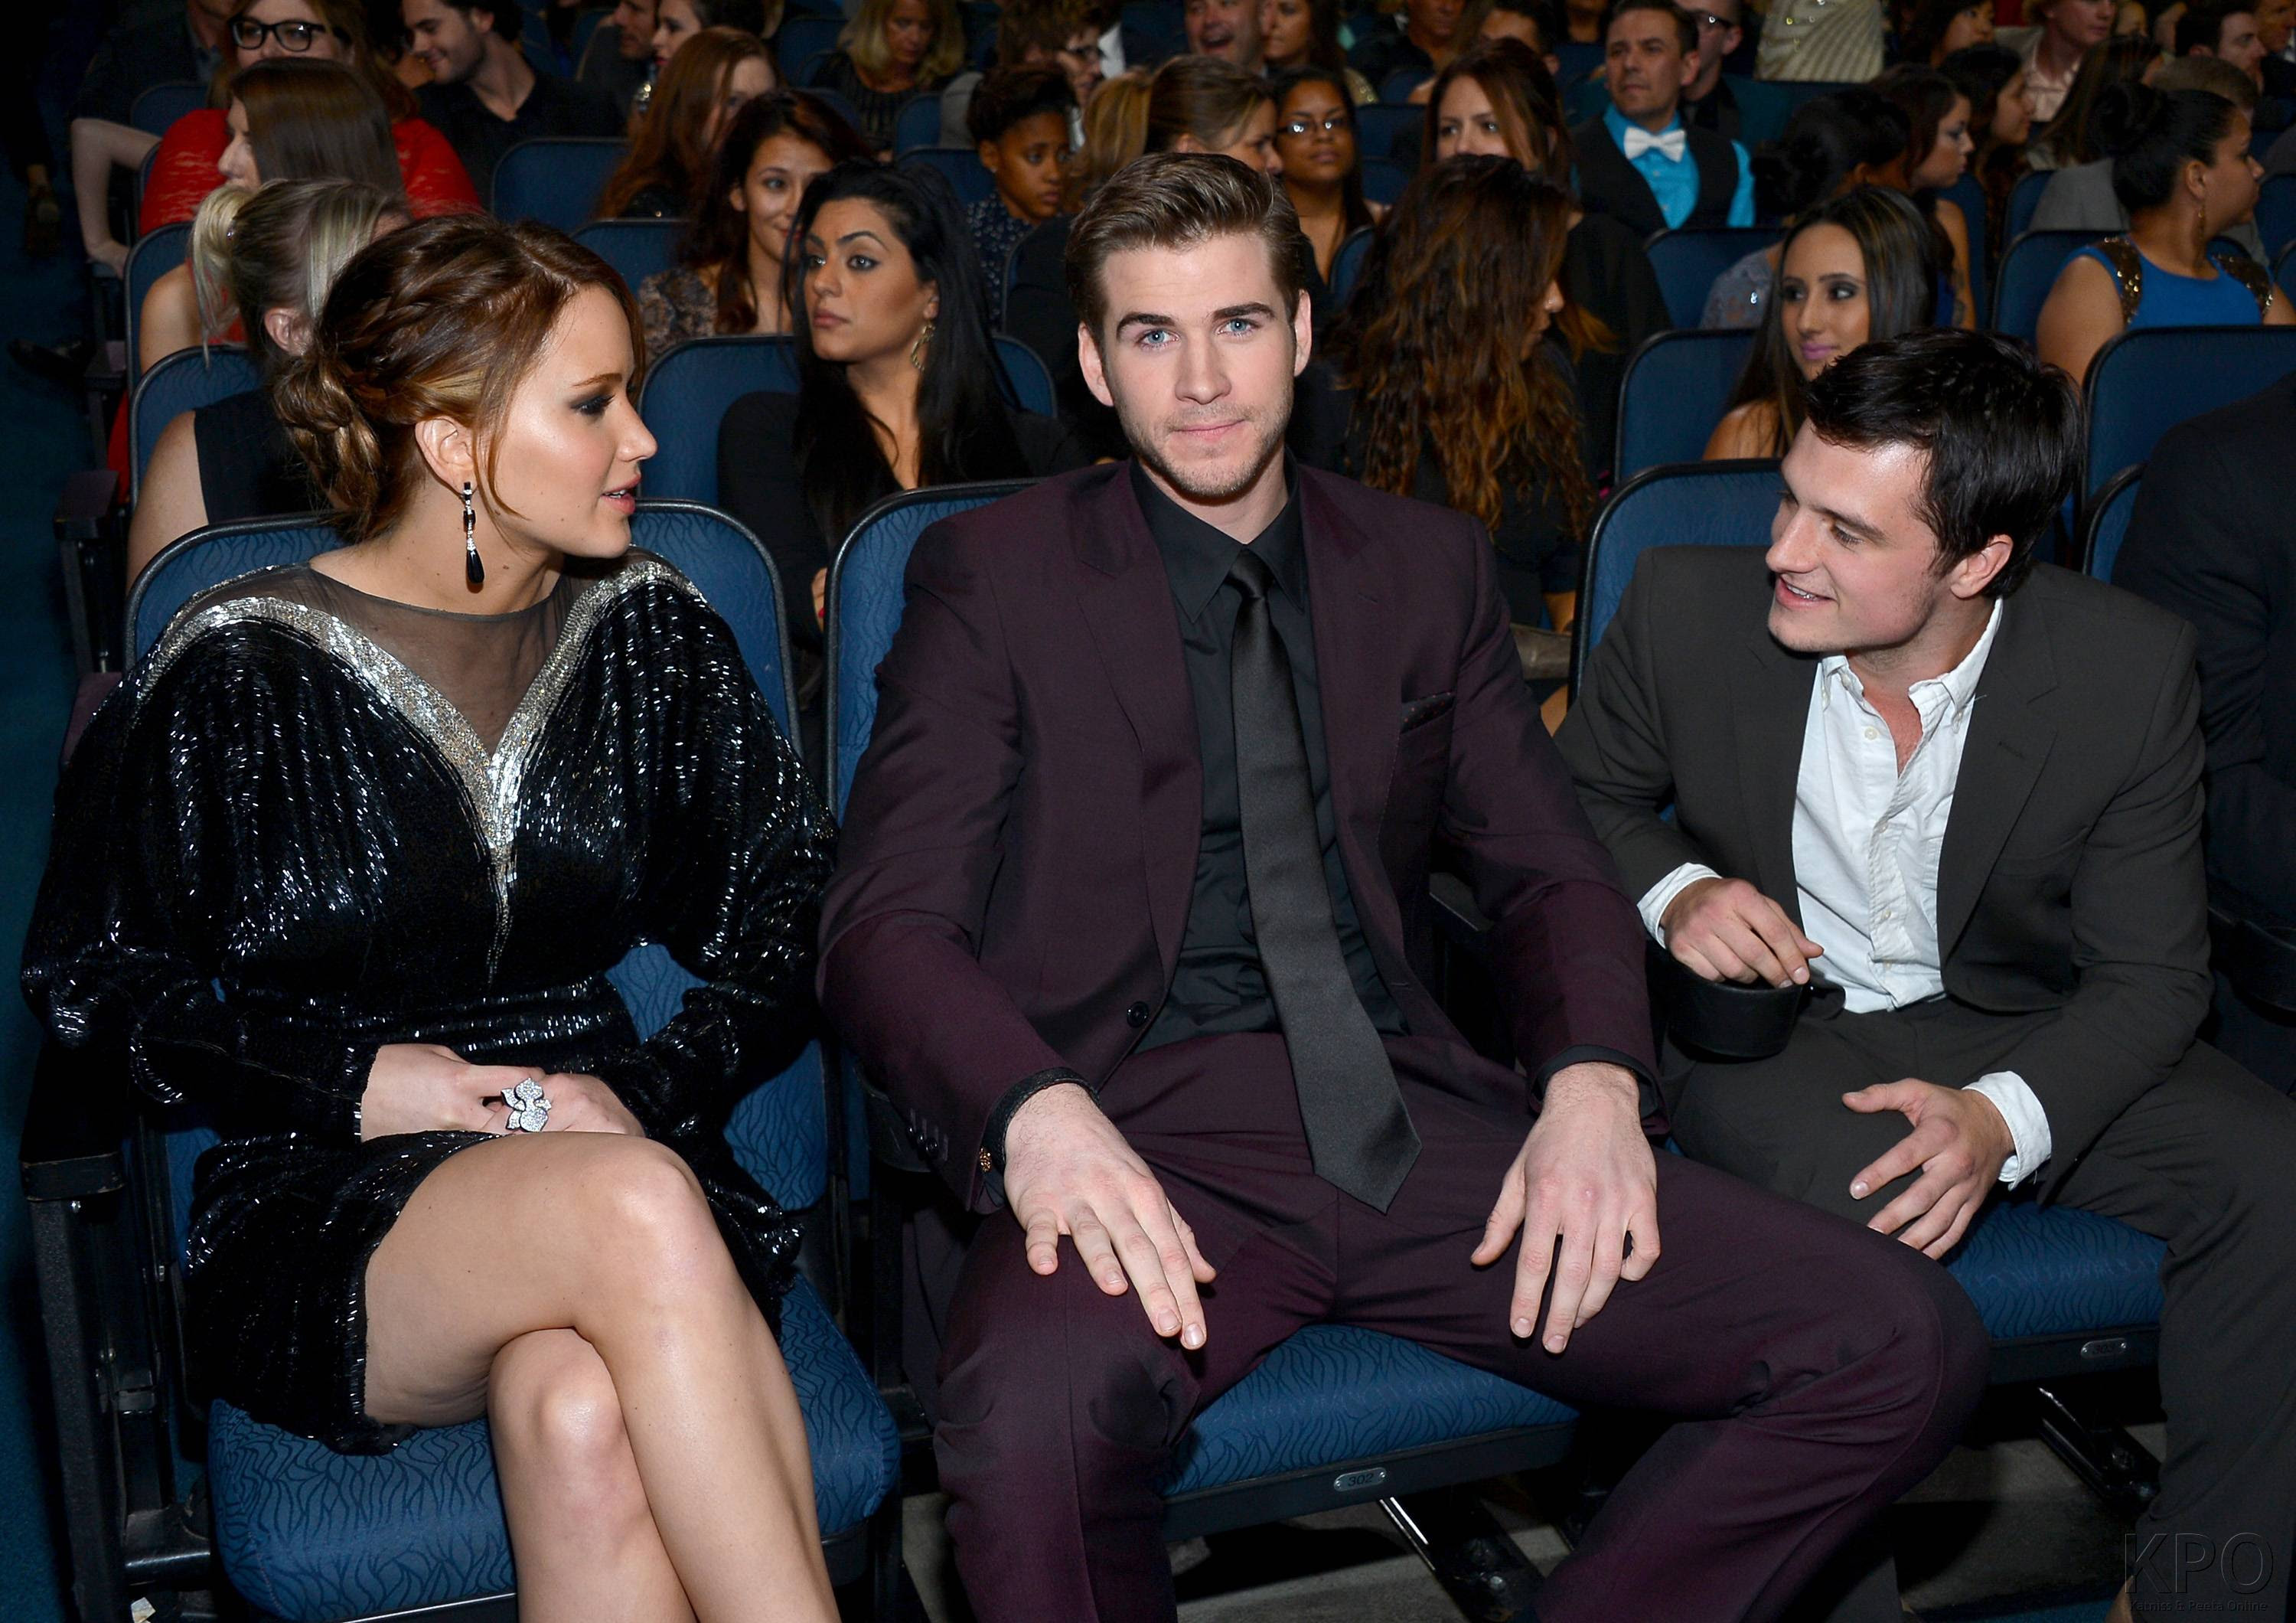 http://artemissia.files.wordpress.com/2013/01/hunger-games-cast-pca-2013-backstage-009.jpg